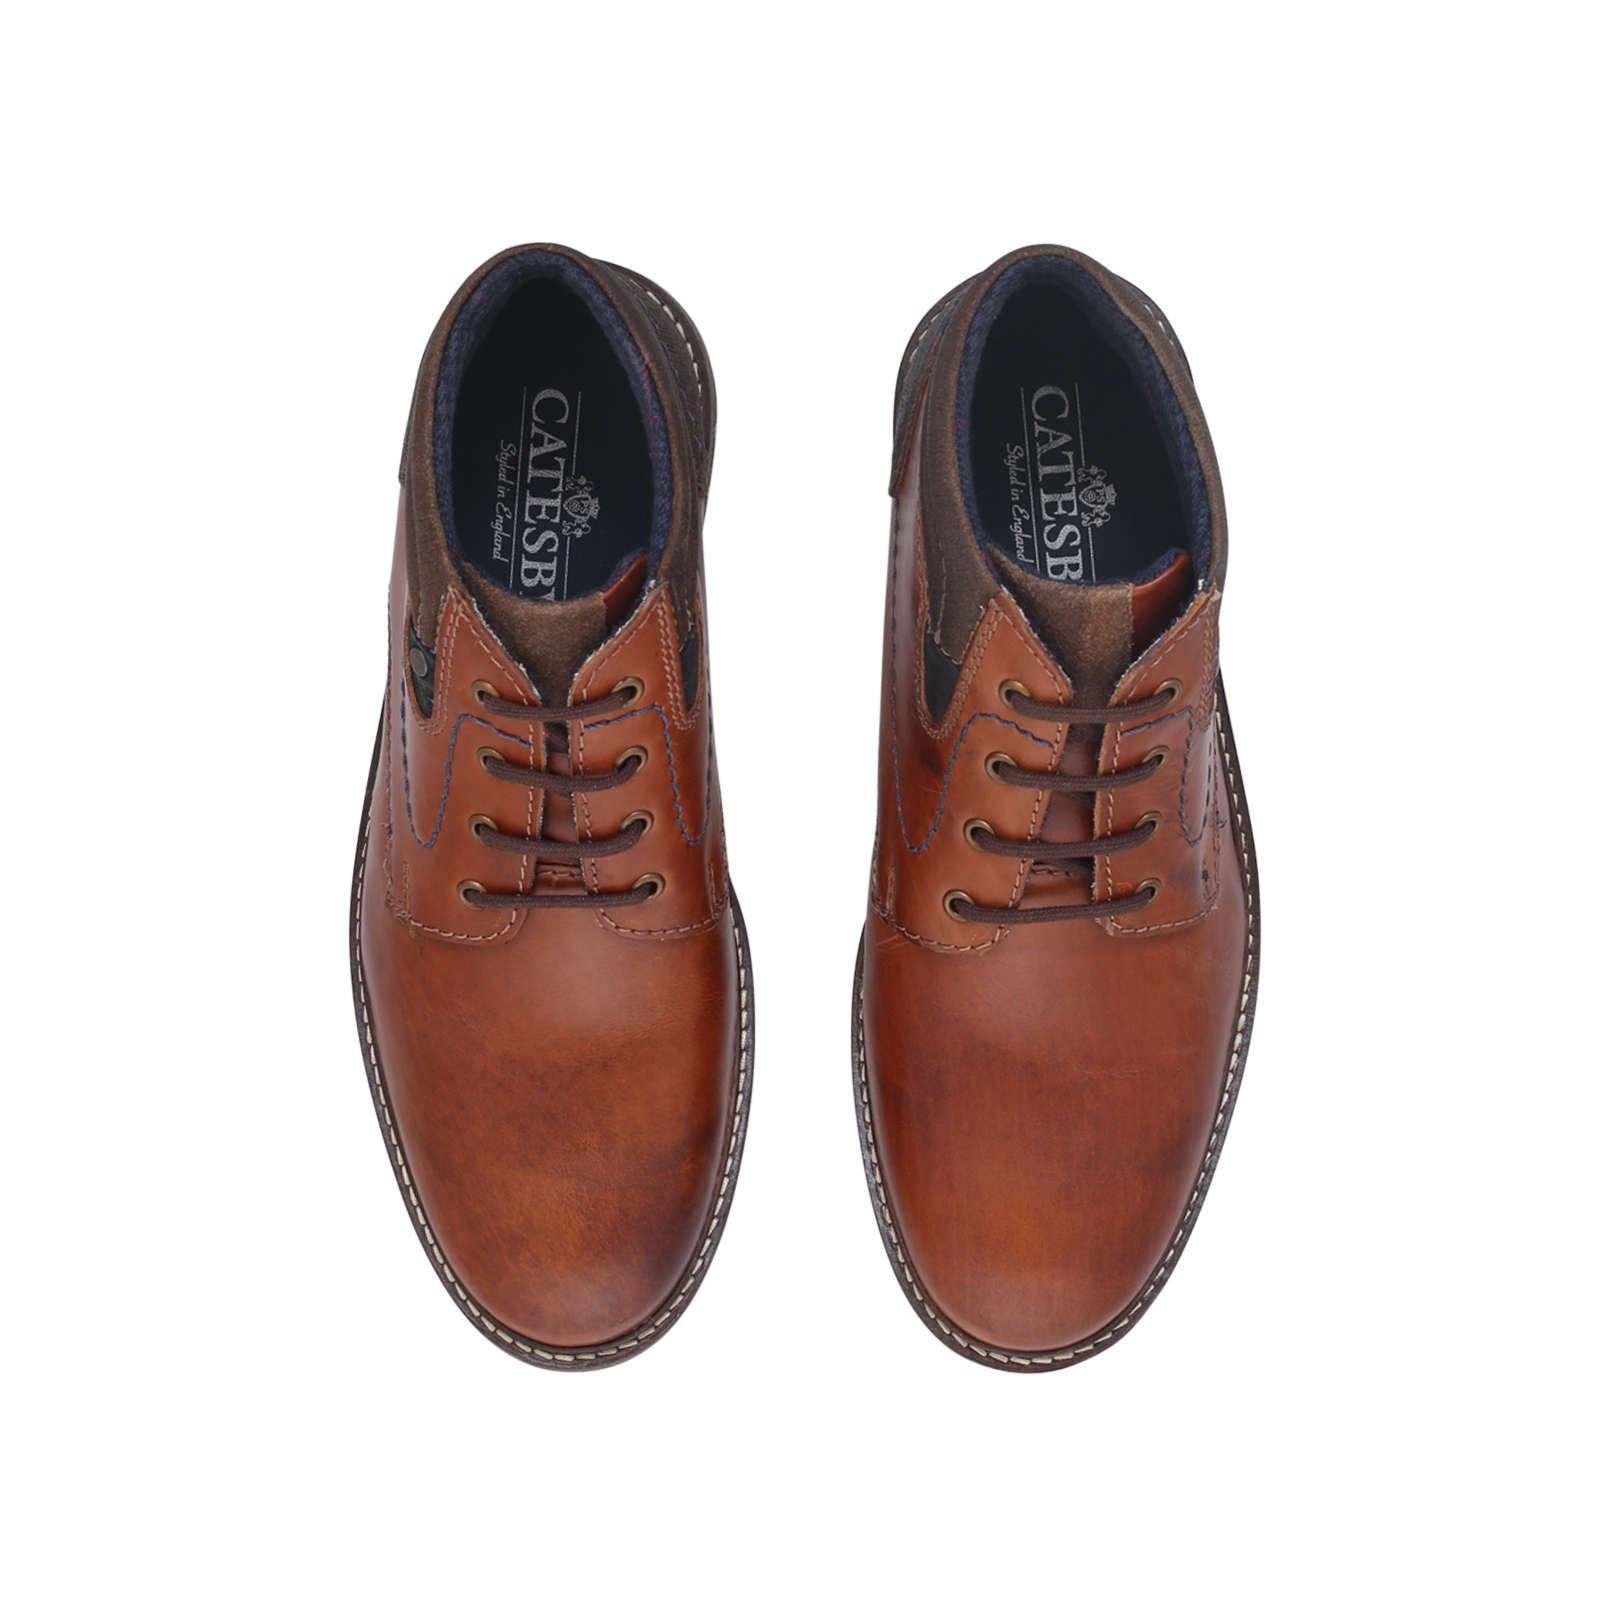 Catesby Thomas Joseph Brown Leather Boots for Men